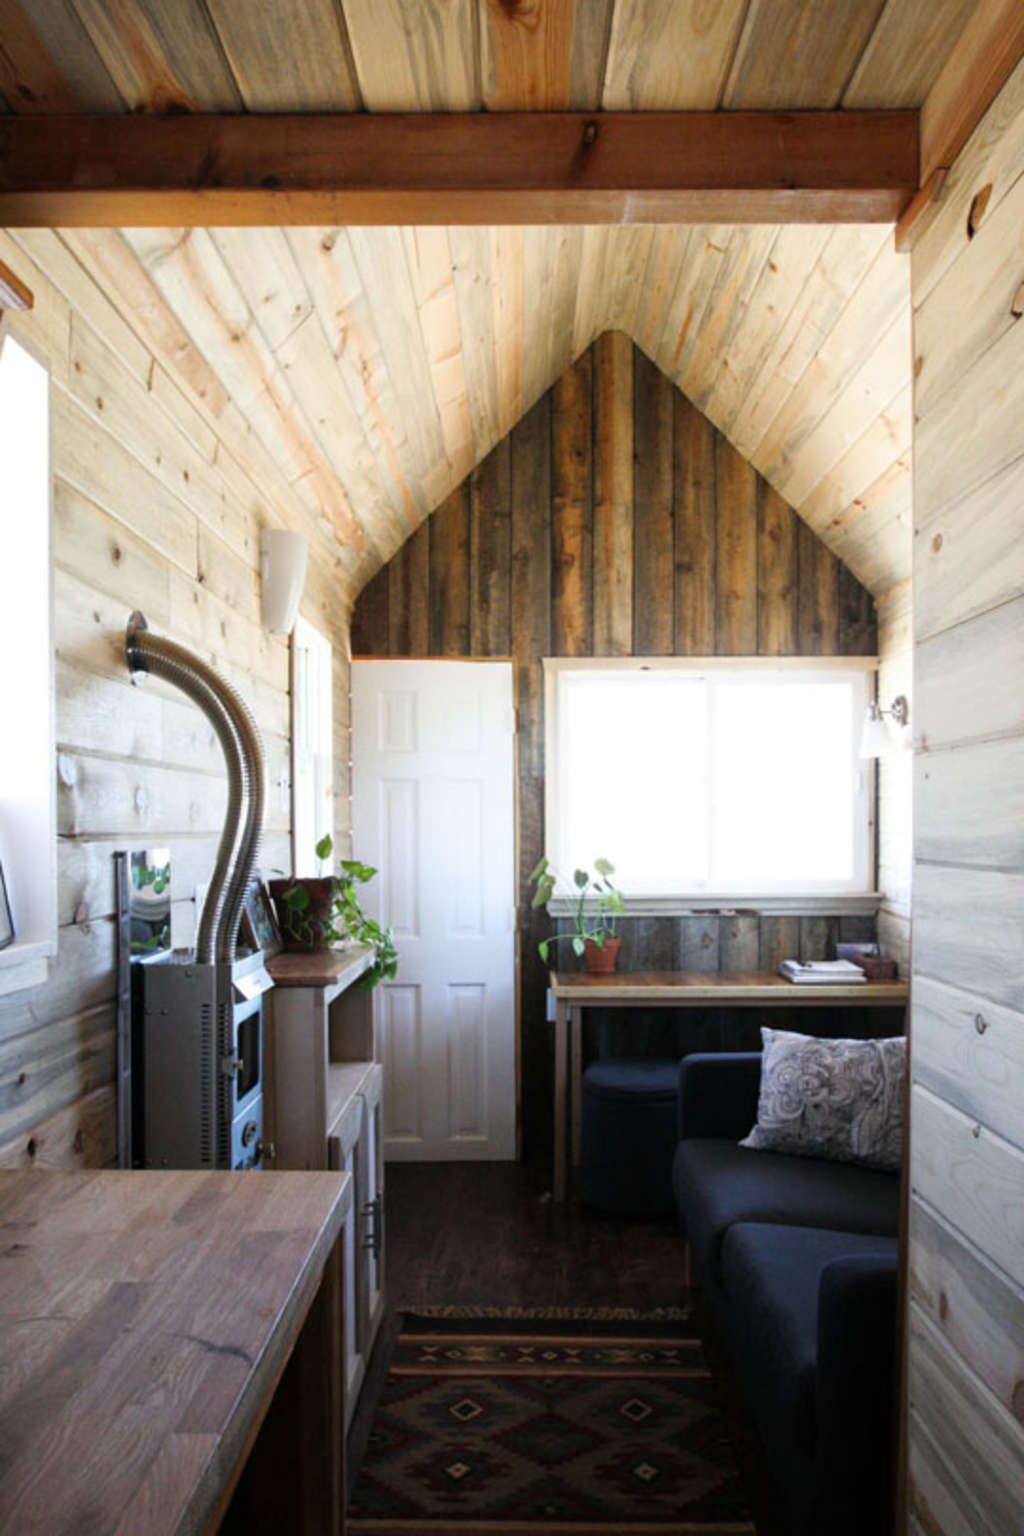 The 8 Biggest Small Space Design Mistakes (& How You Can Stop Making Them)